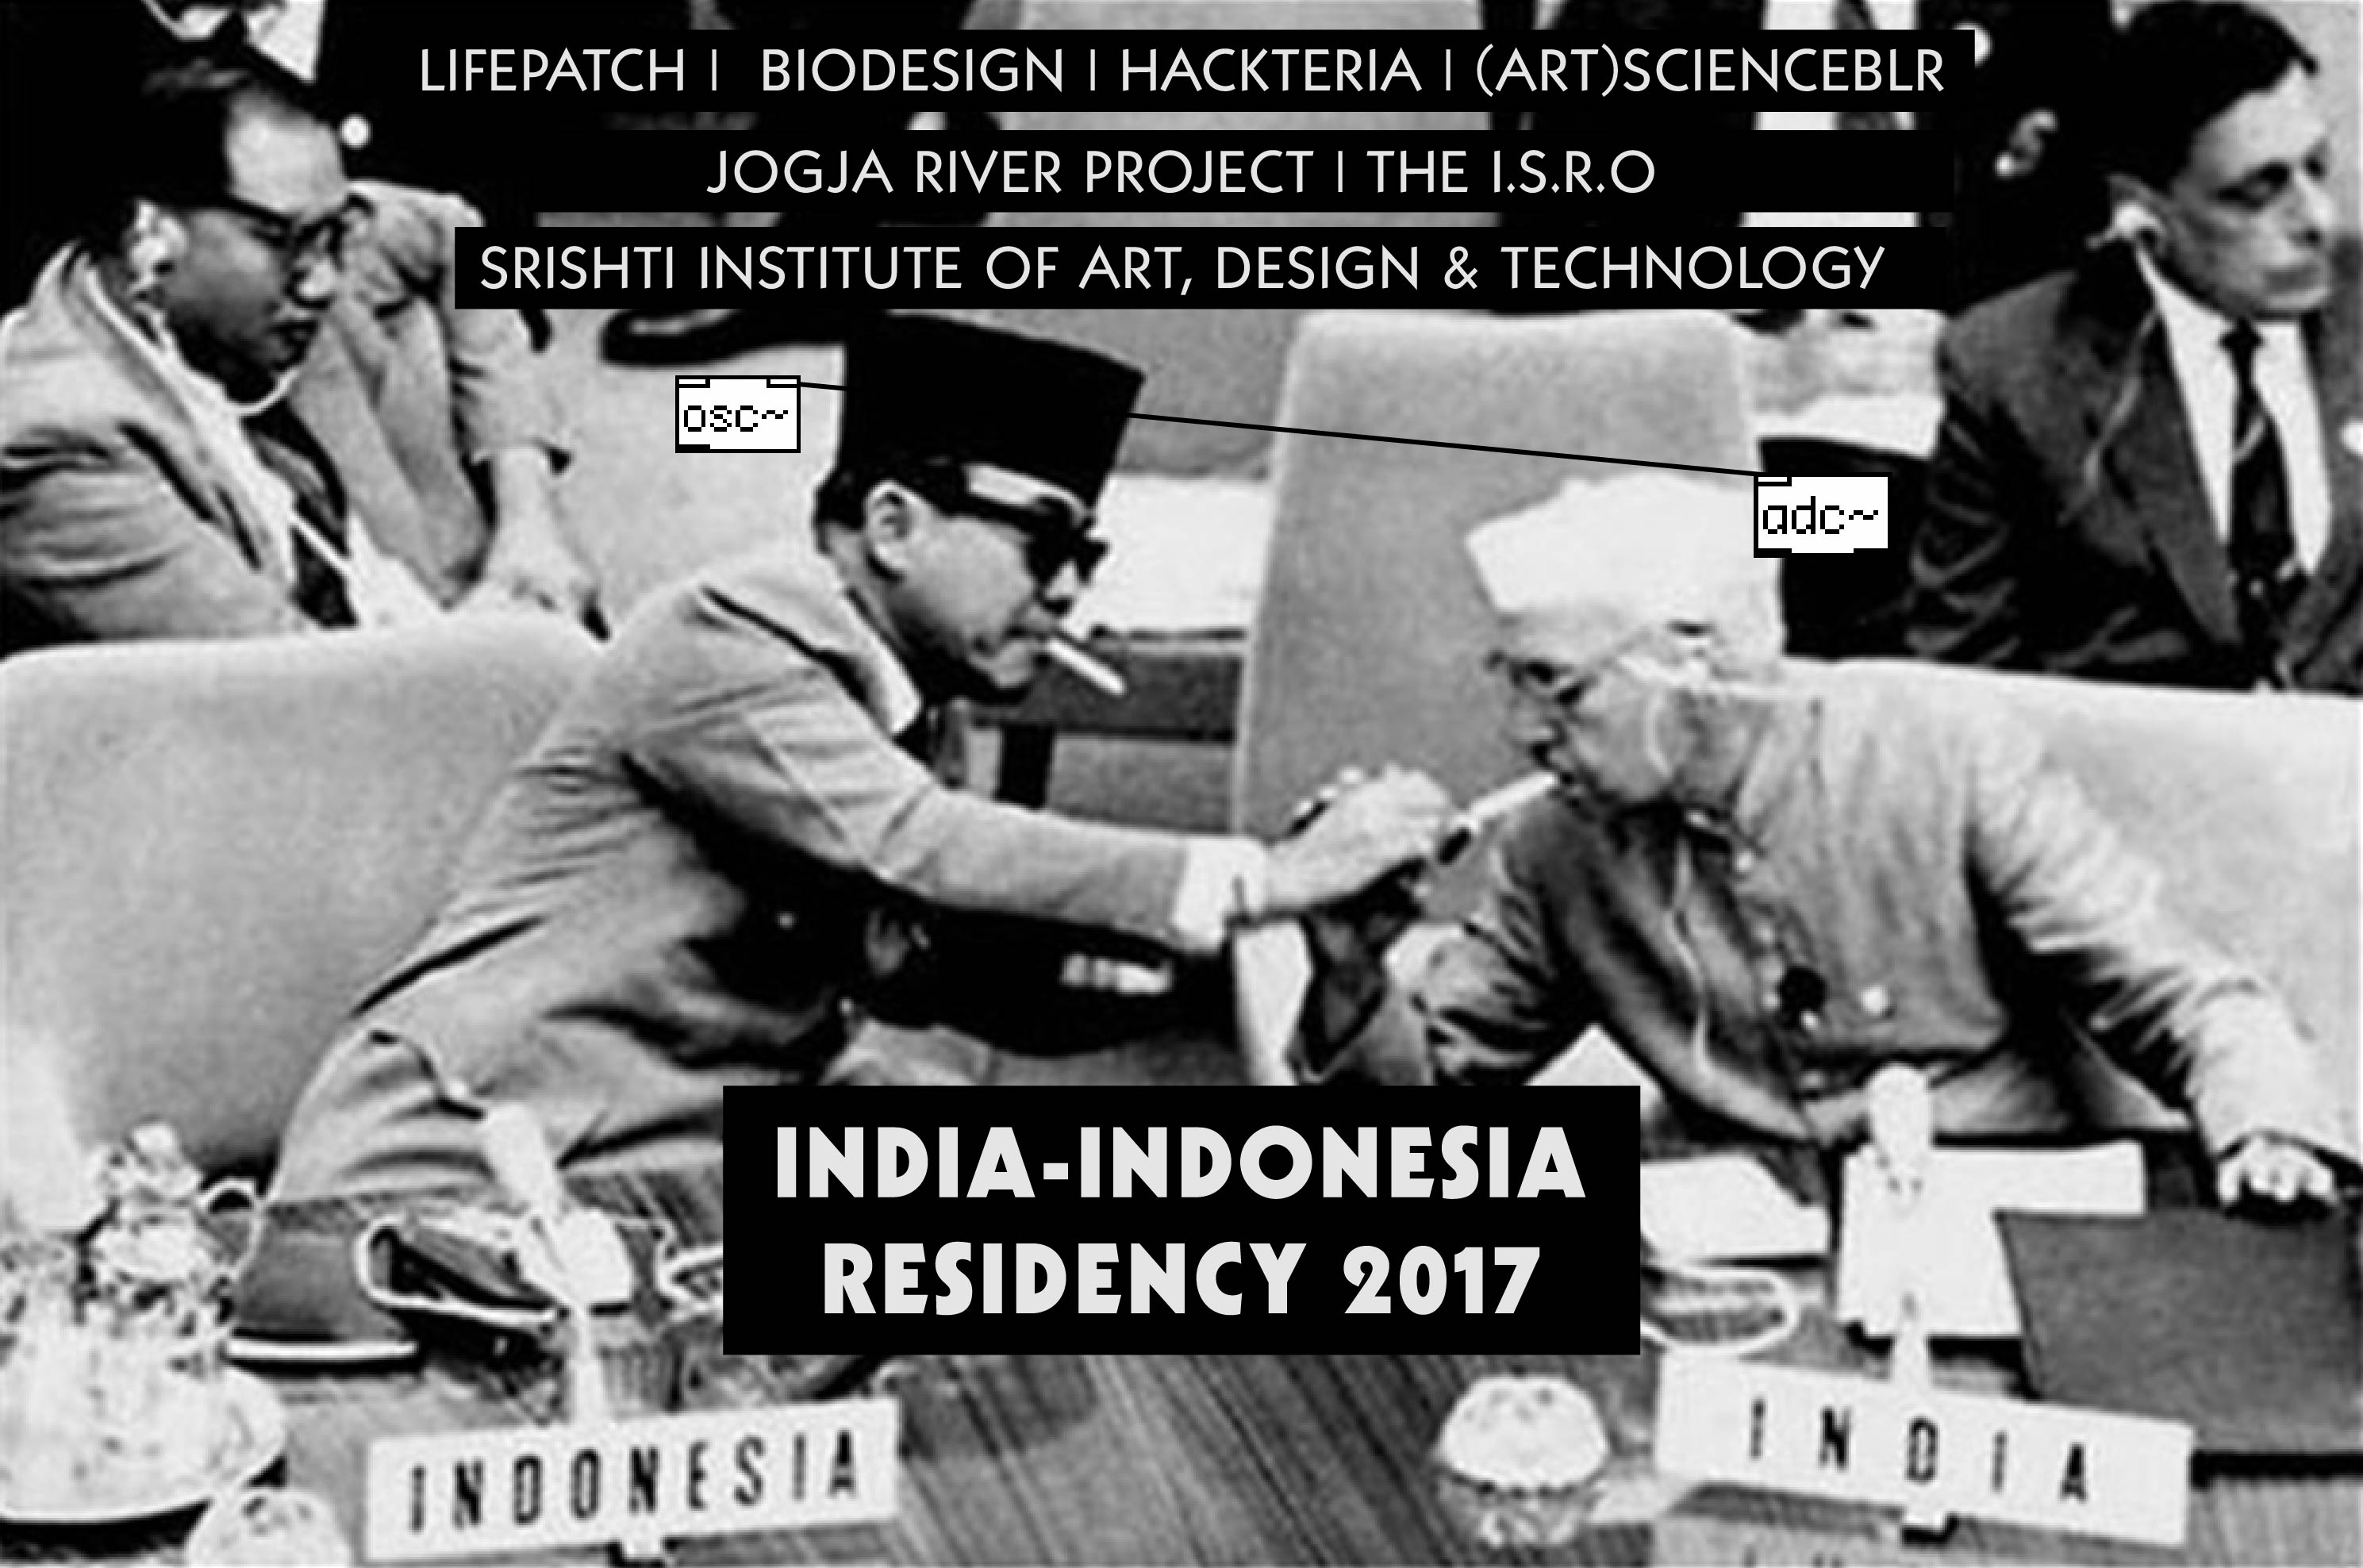 India-Indonesia Residency 2017